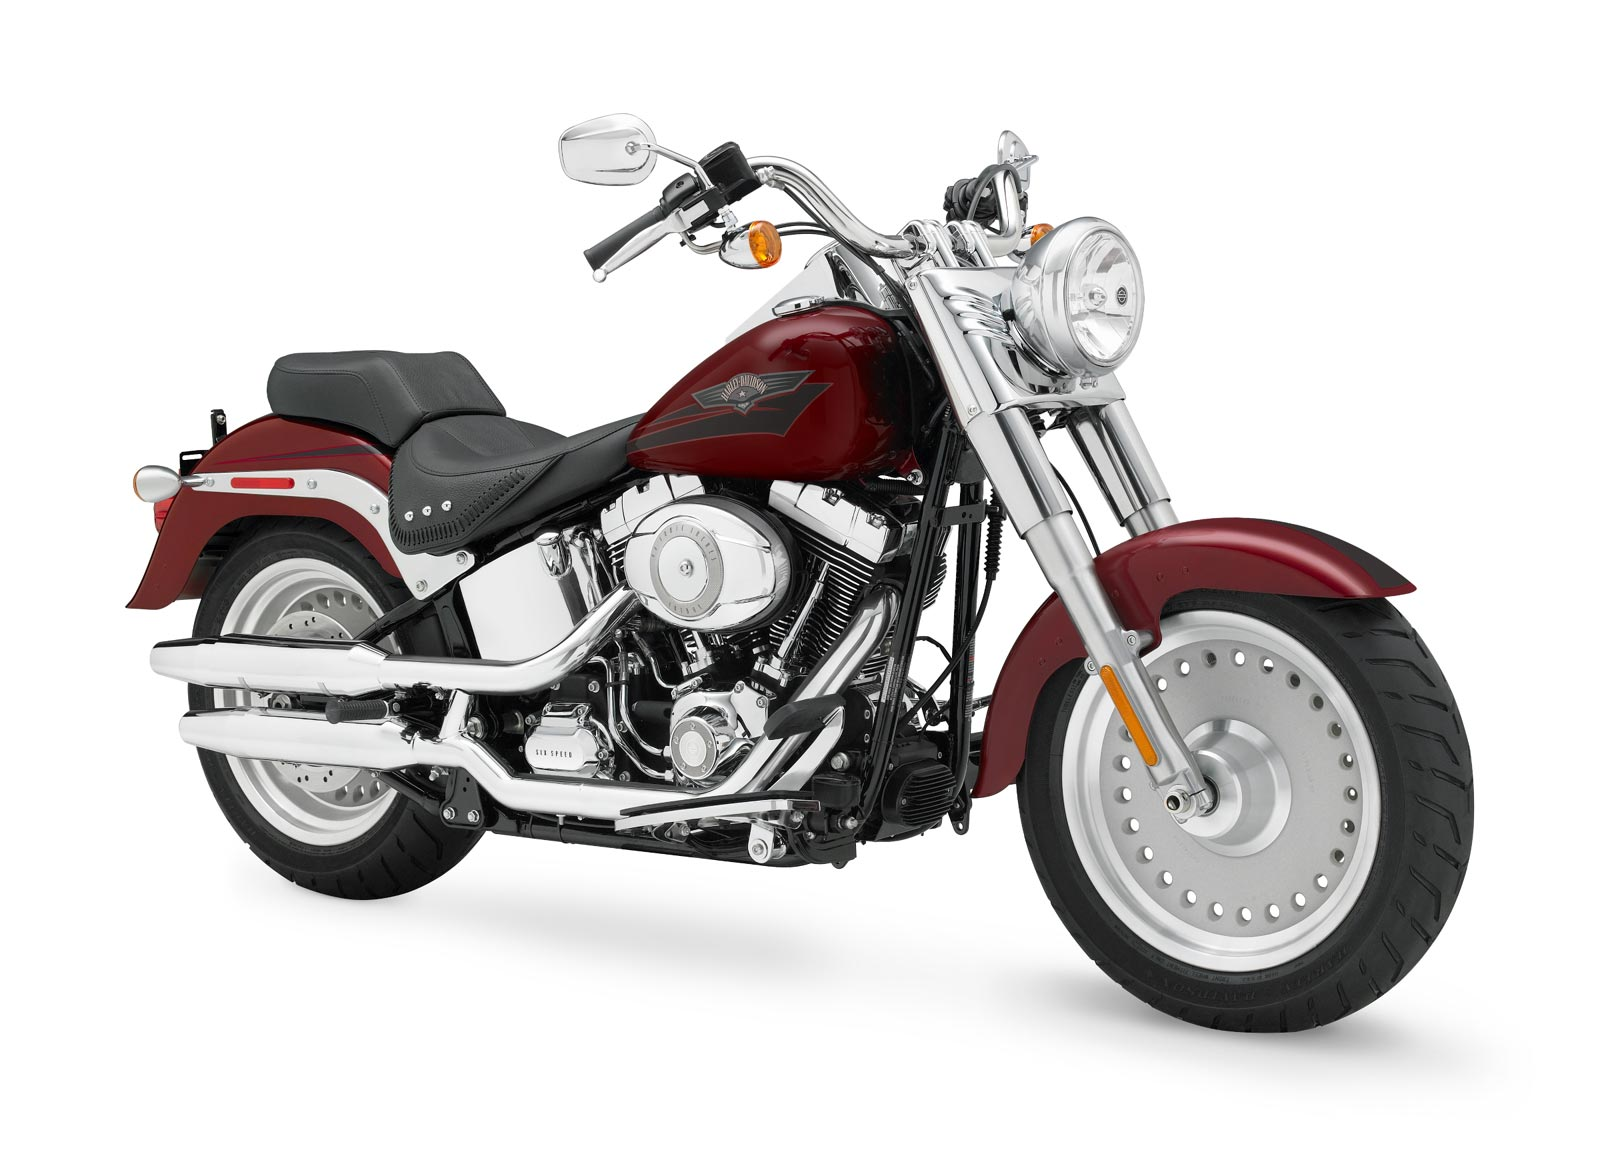 2008 Harley Davidson Softail FLSTFFatBoyb harley davidson flstf fat boy harley davidson motorcycle diagrams at gsmx.co